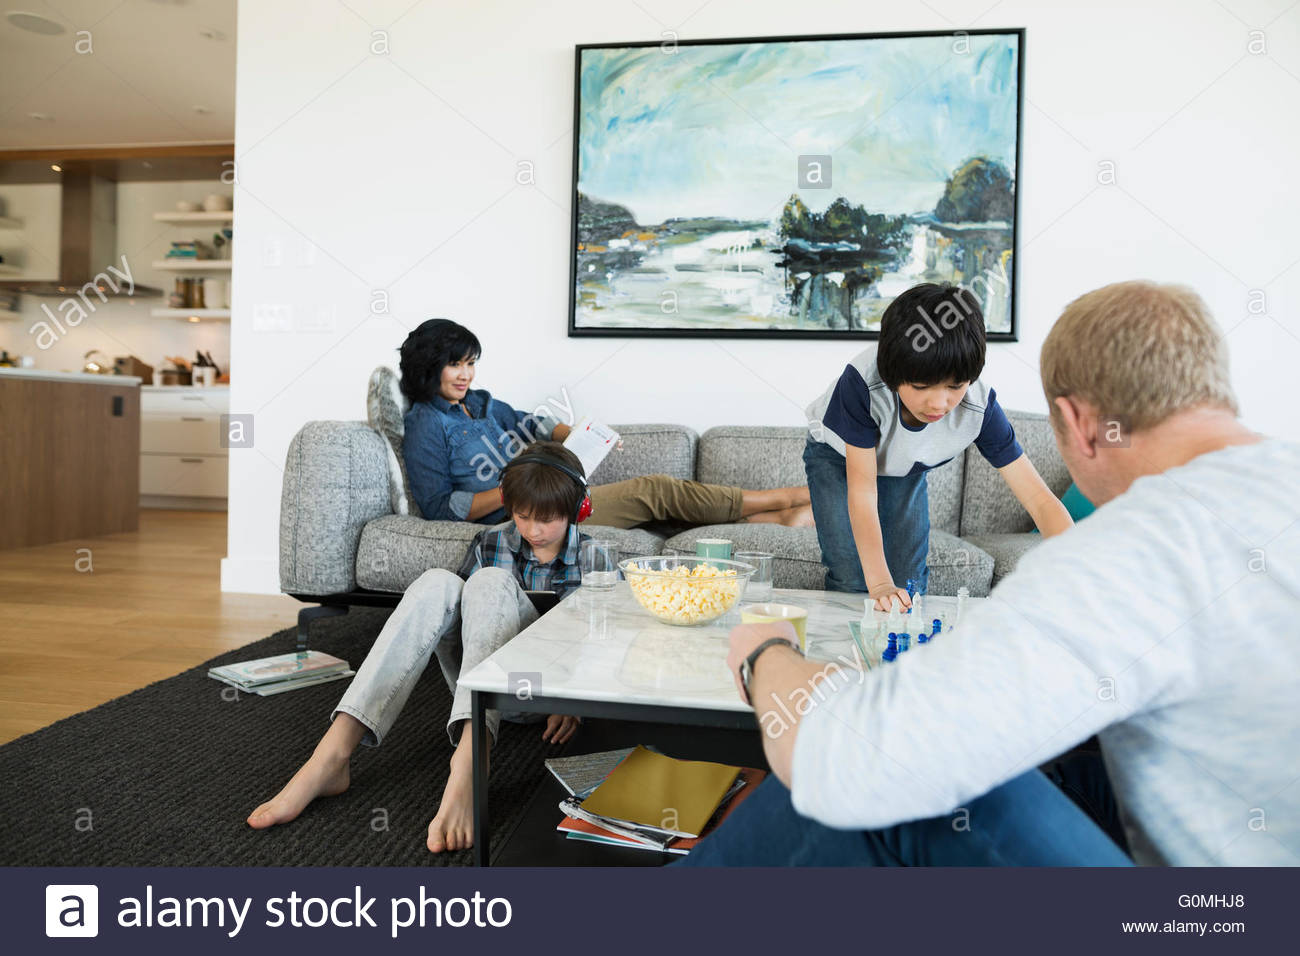 Family relaxing and playing chess in living room - Stock Image